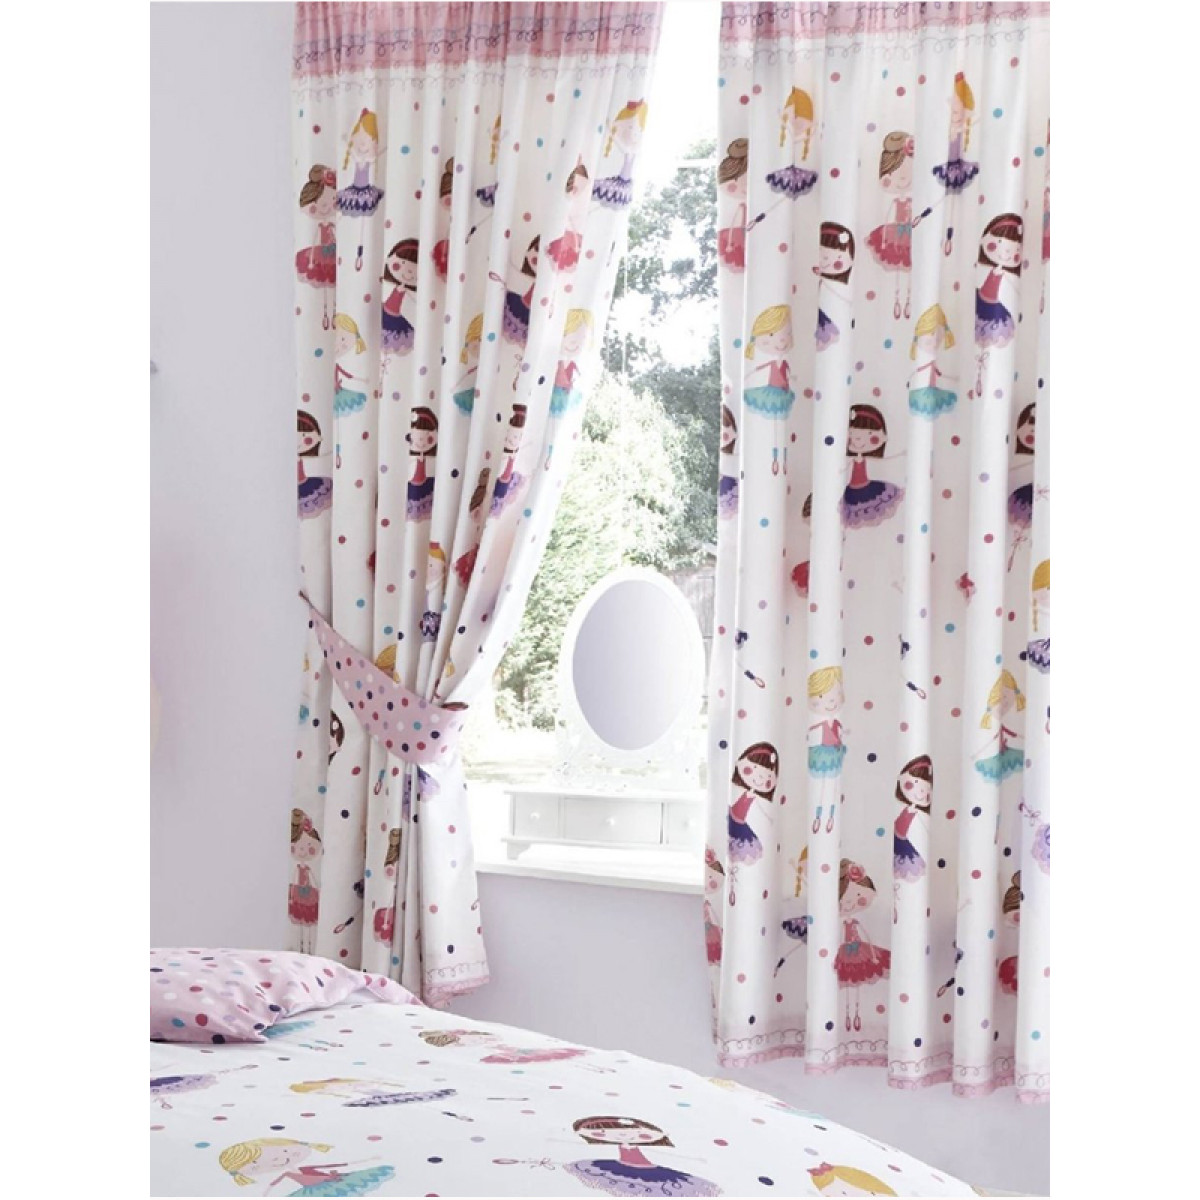 Marilyn Monroe Bedroom Curtains Kids Bedroom Curtains Football Characters Childrens